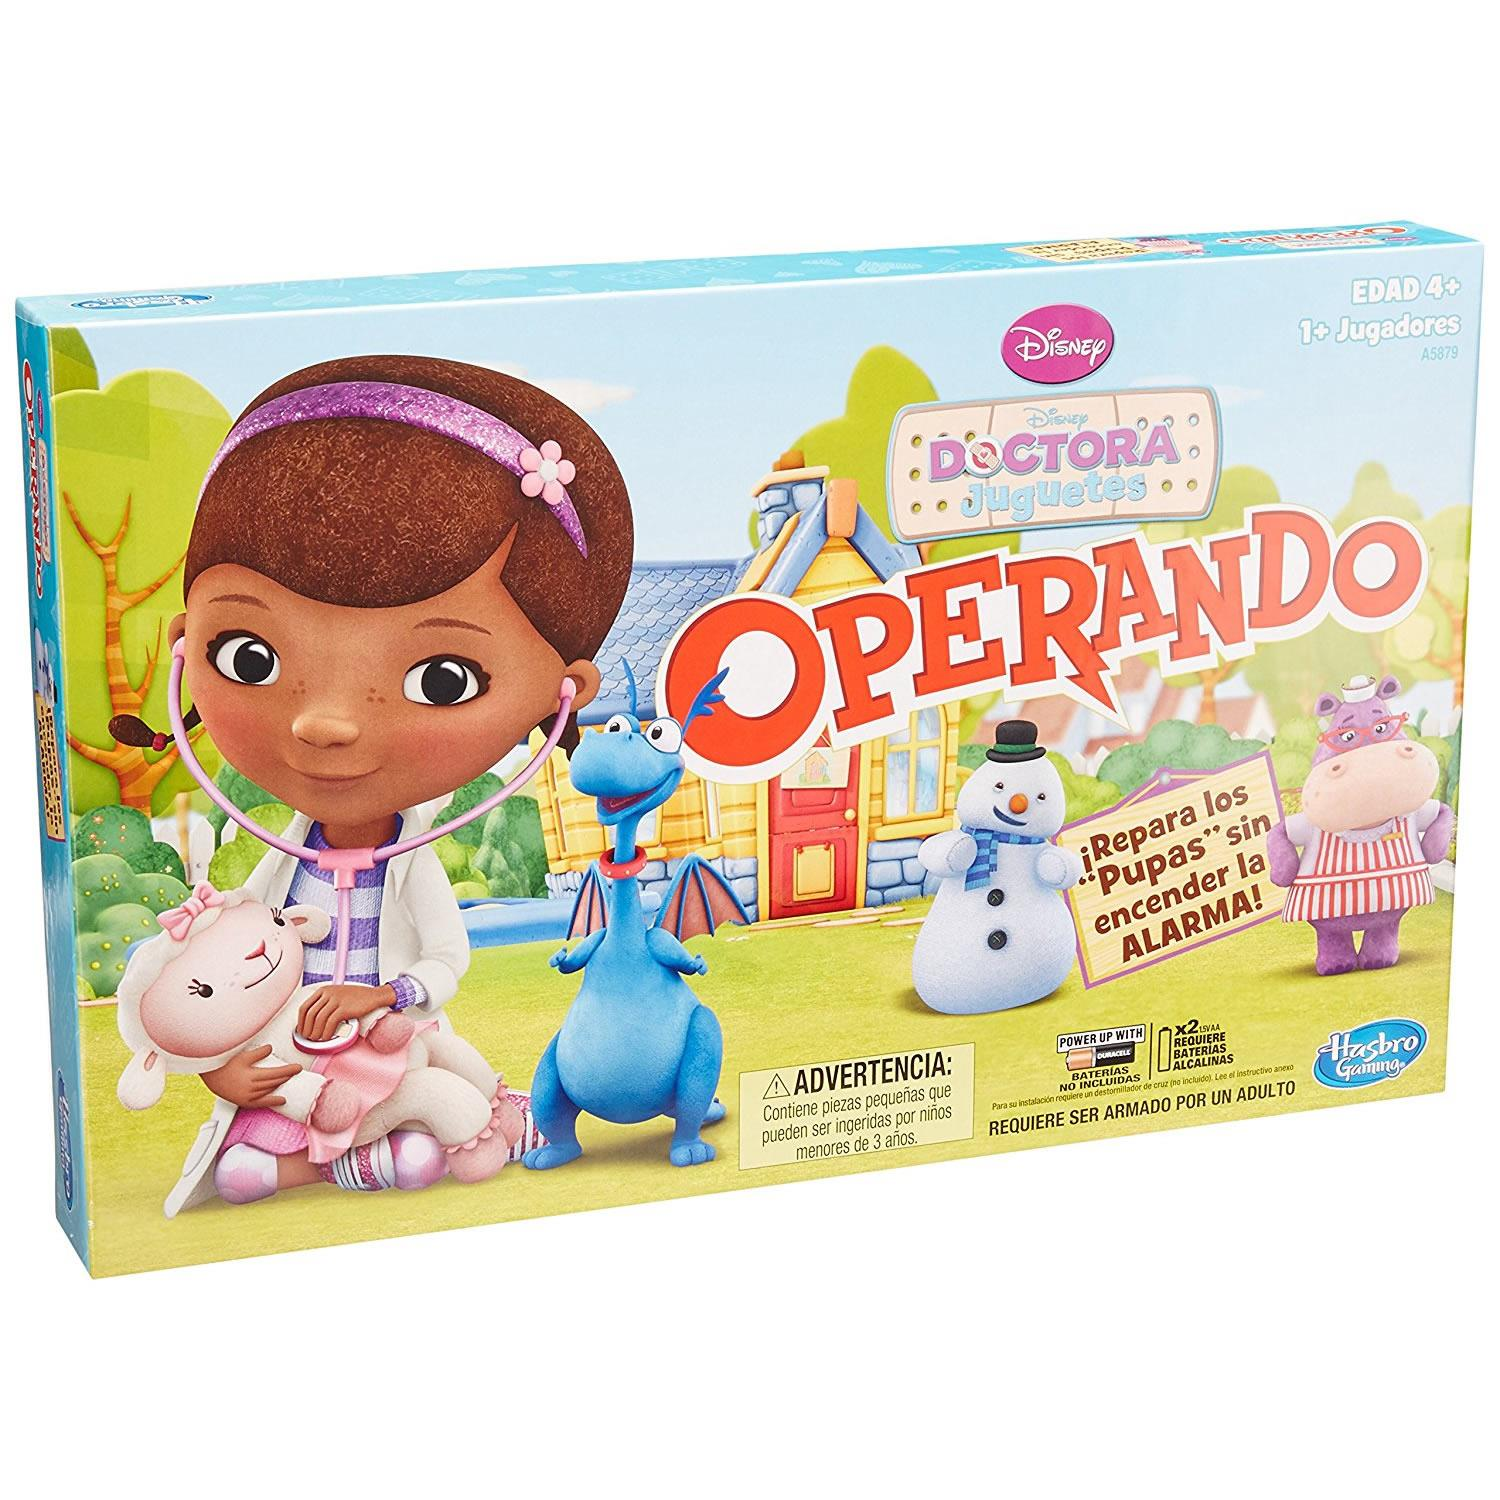 Operation Disney Doc McStuffins Spanish Version Doctora Juguetes Operando Game Hasbro... by Hasbro